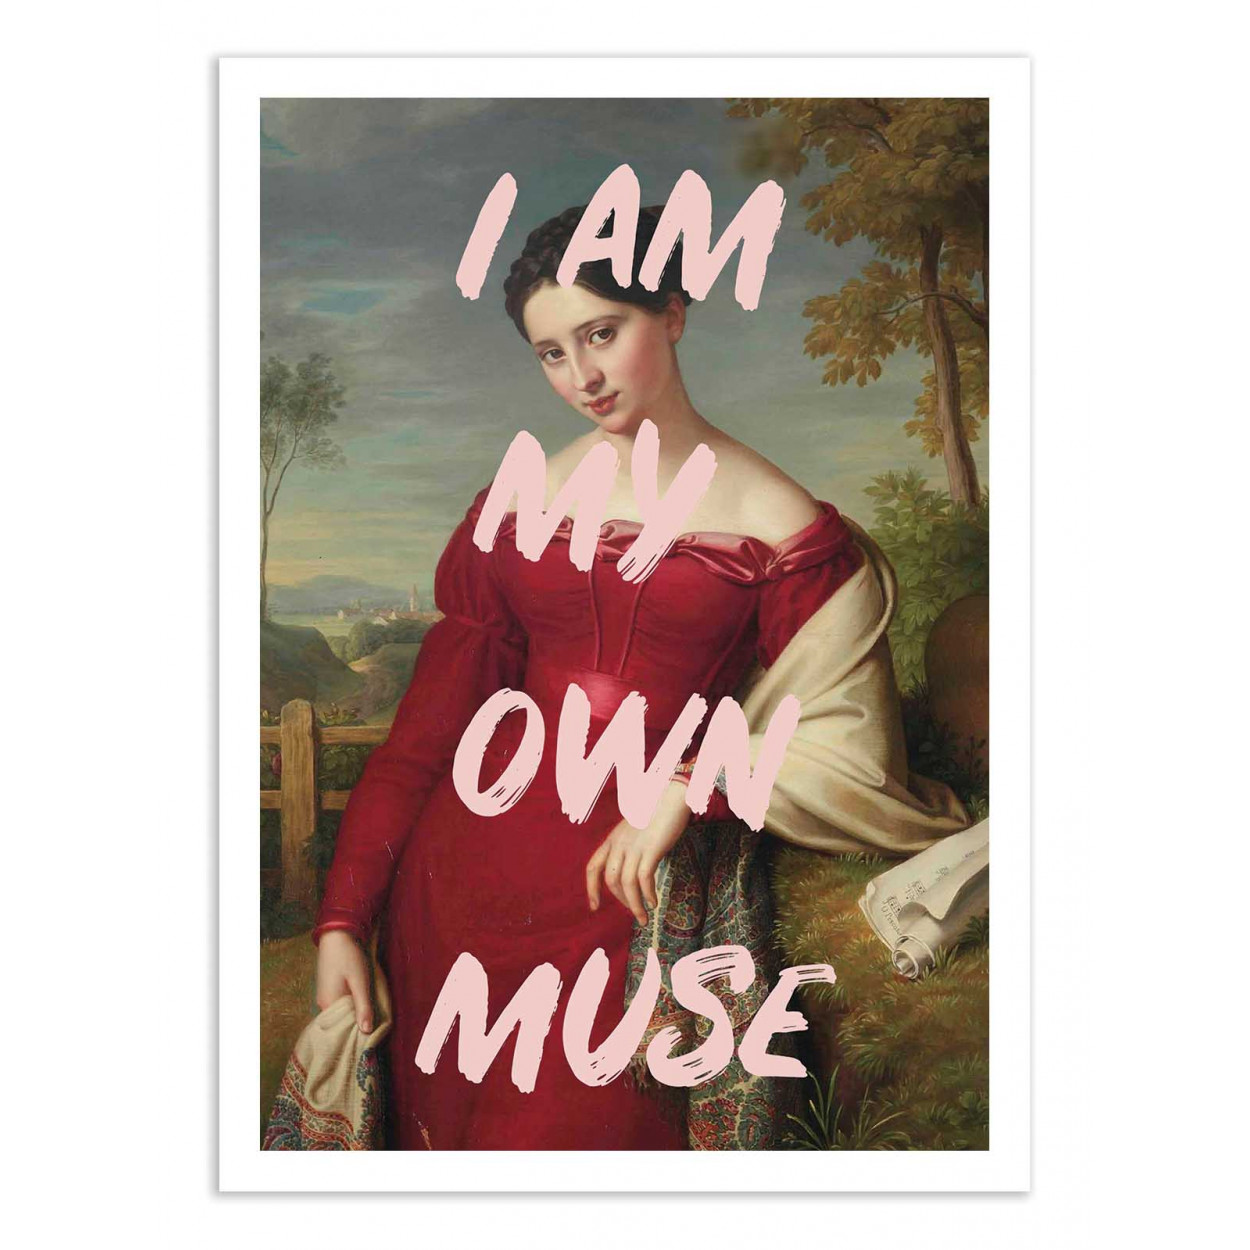 MY OWN MUSE - RUBY AND B -  Affiche d'art 50 x 70 cm